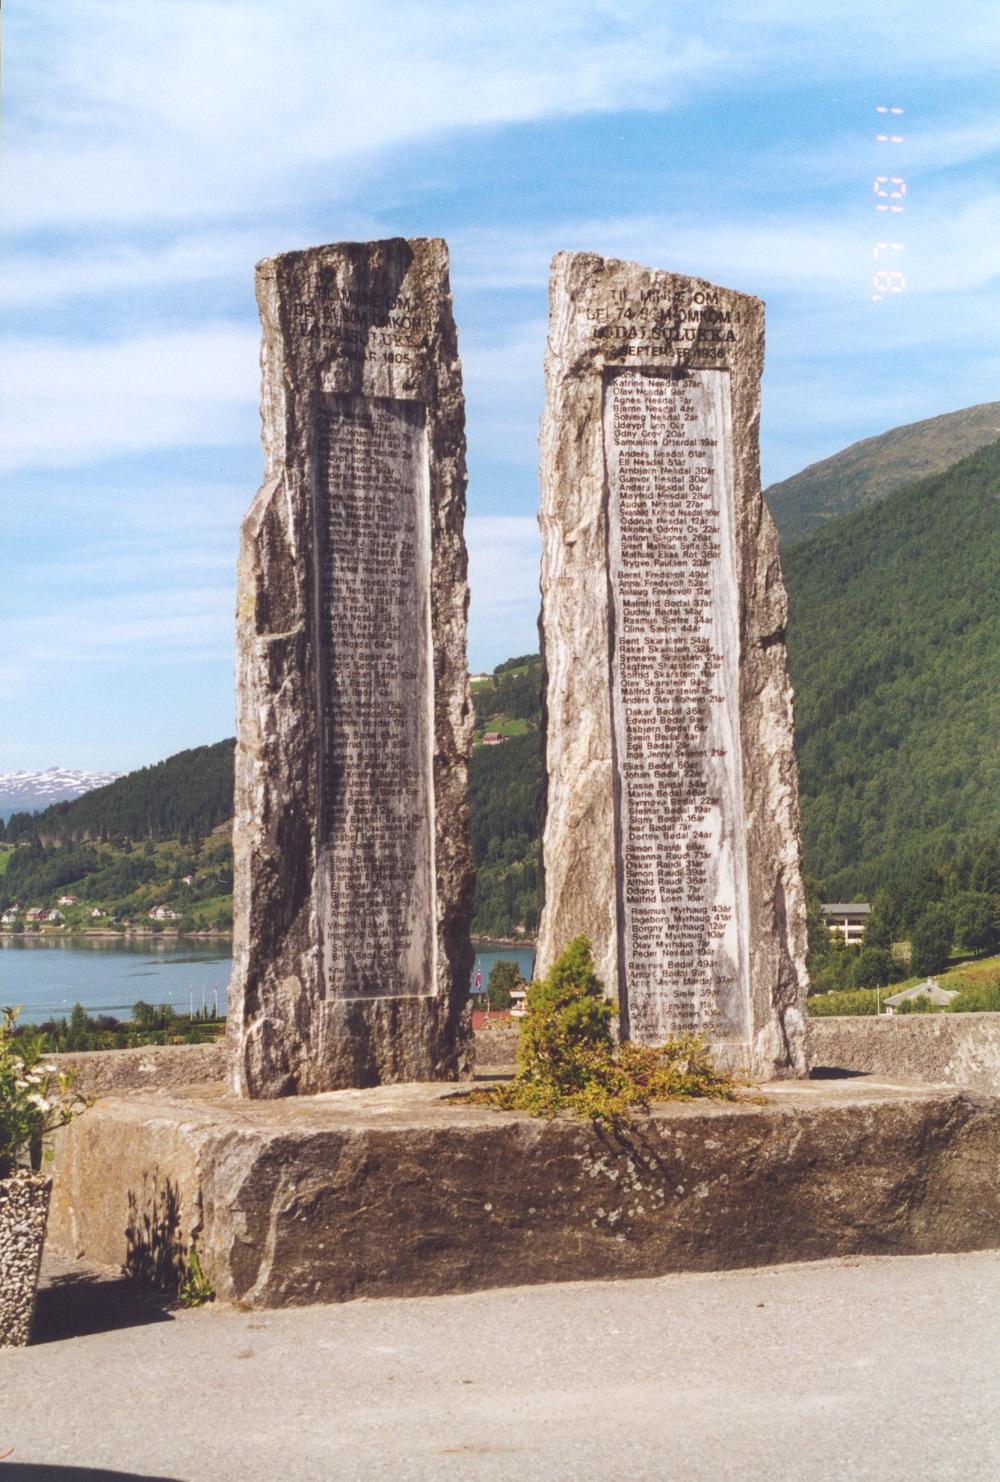 The memorial in Loen.